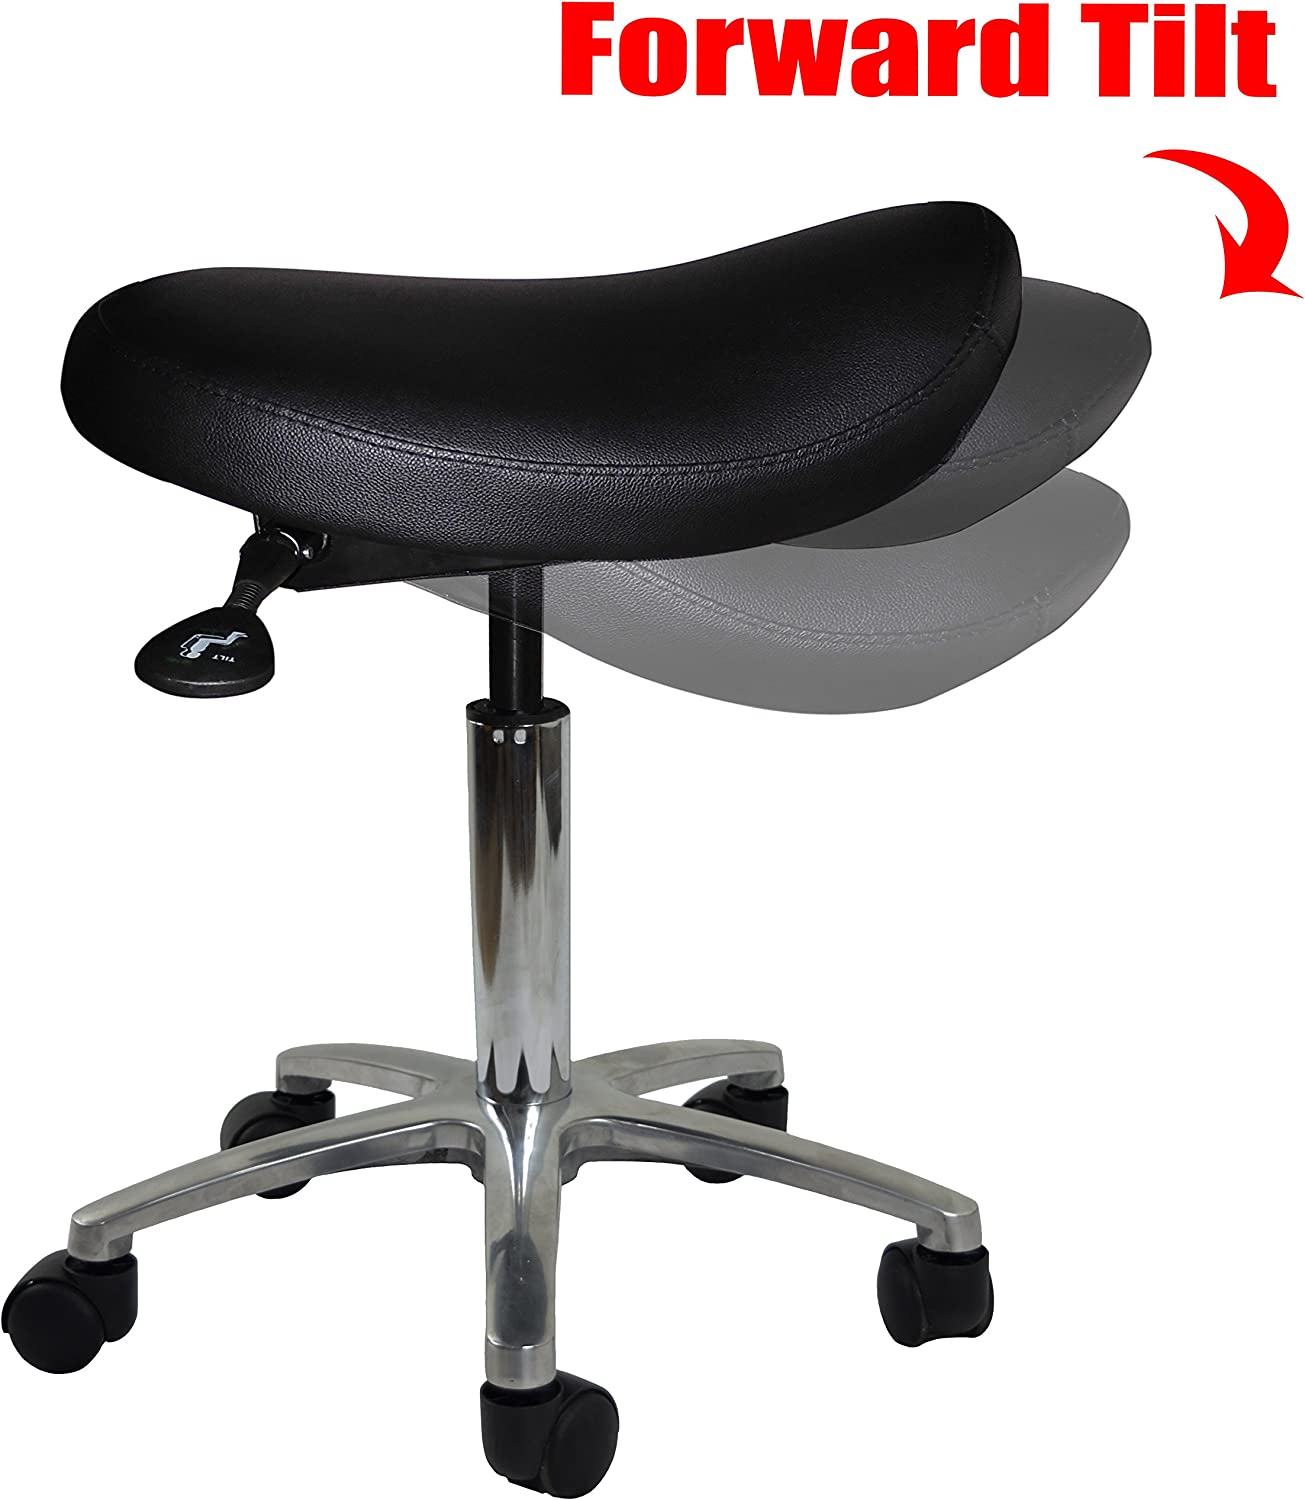 Backless Beige Adjustable Saddle Stool Chair for Clinic Hospital Pharmacy Medical Beauty Lab Exam Office Technician Physical Occupational Therapy Physician 2xhome